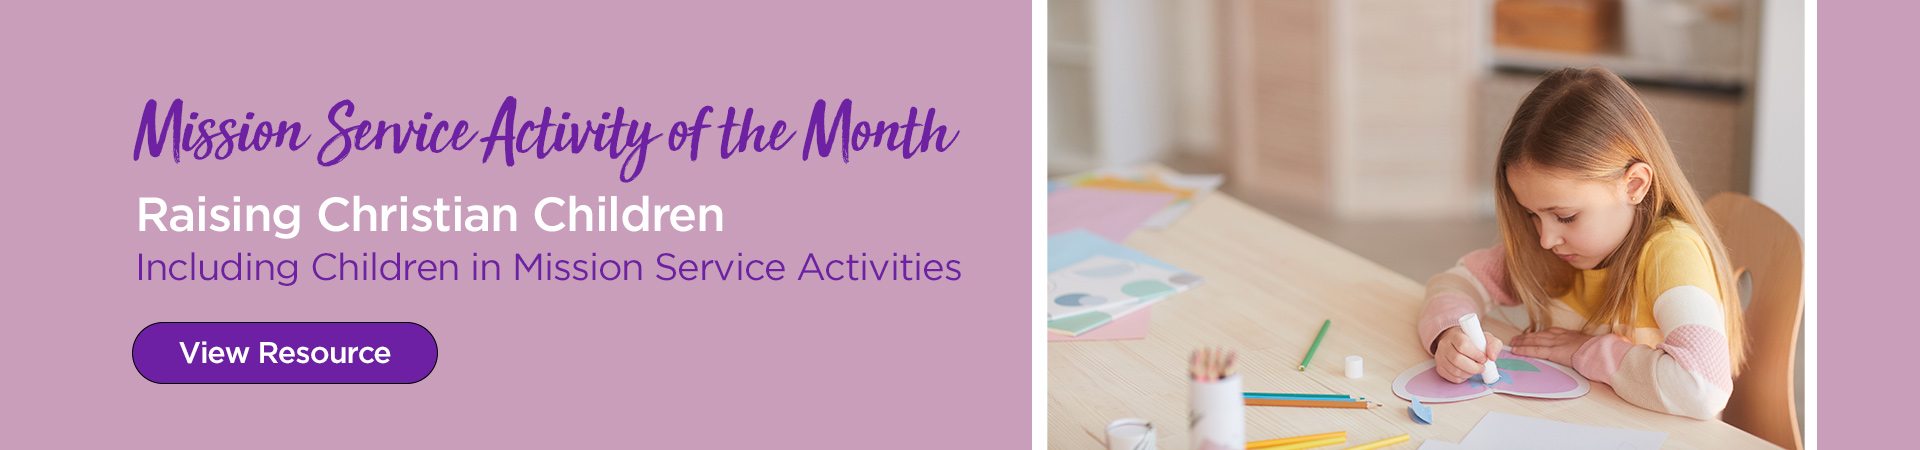 Mission Service Activity of the Month — Raising Christian Children: Including children in mission service activities. View Resources.